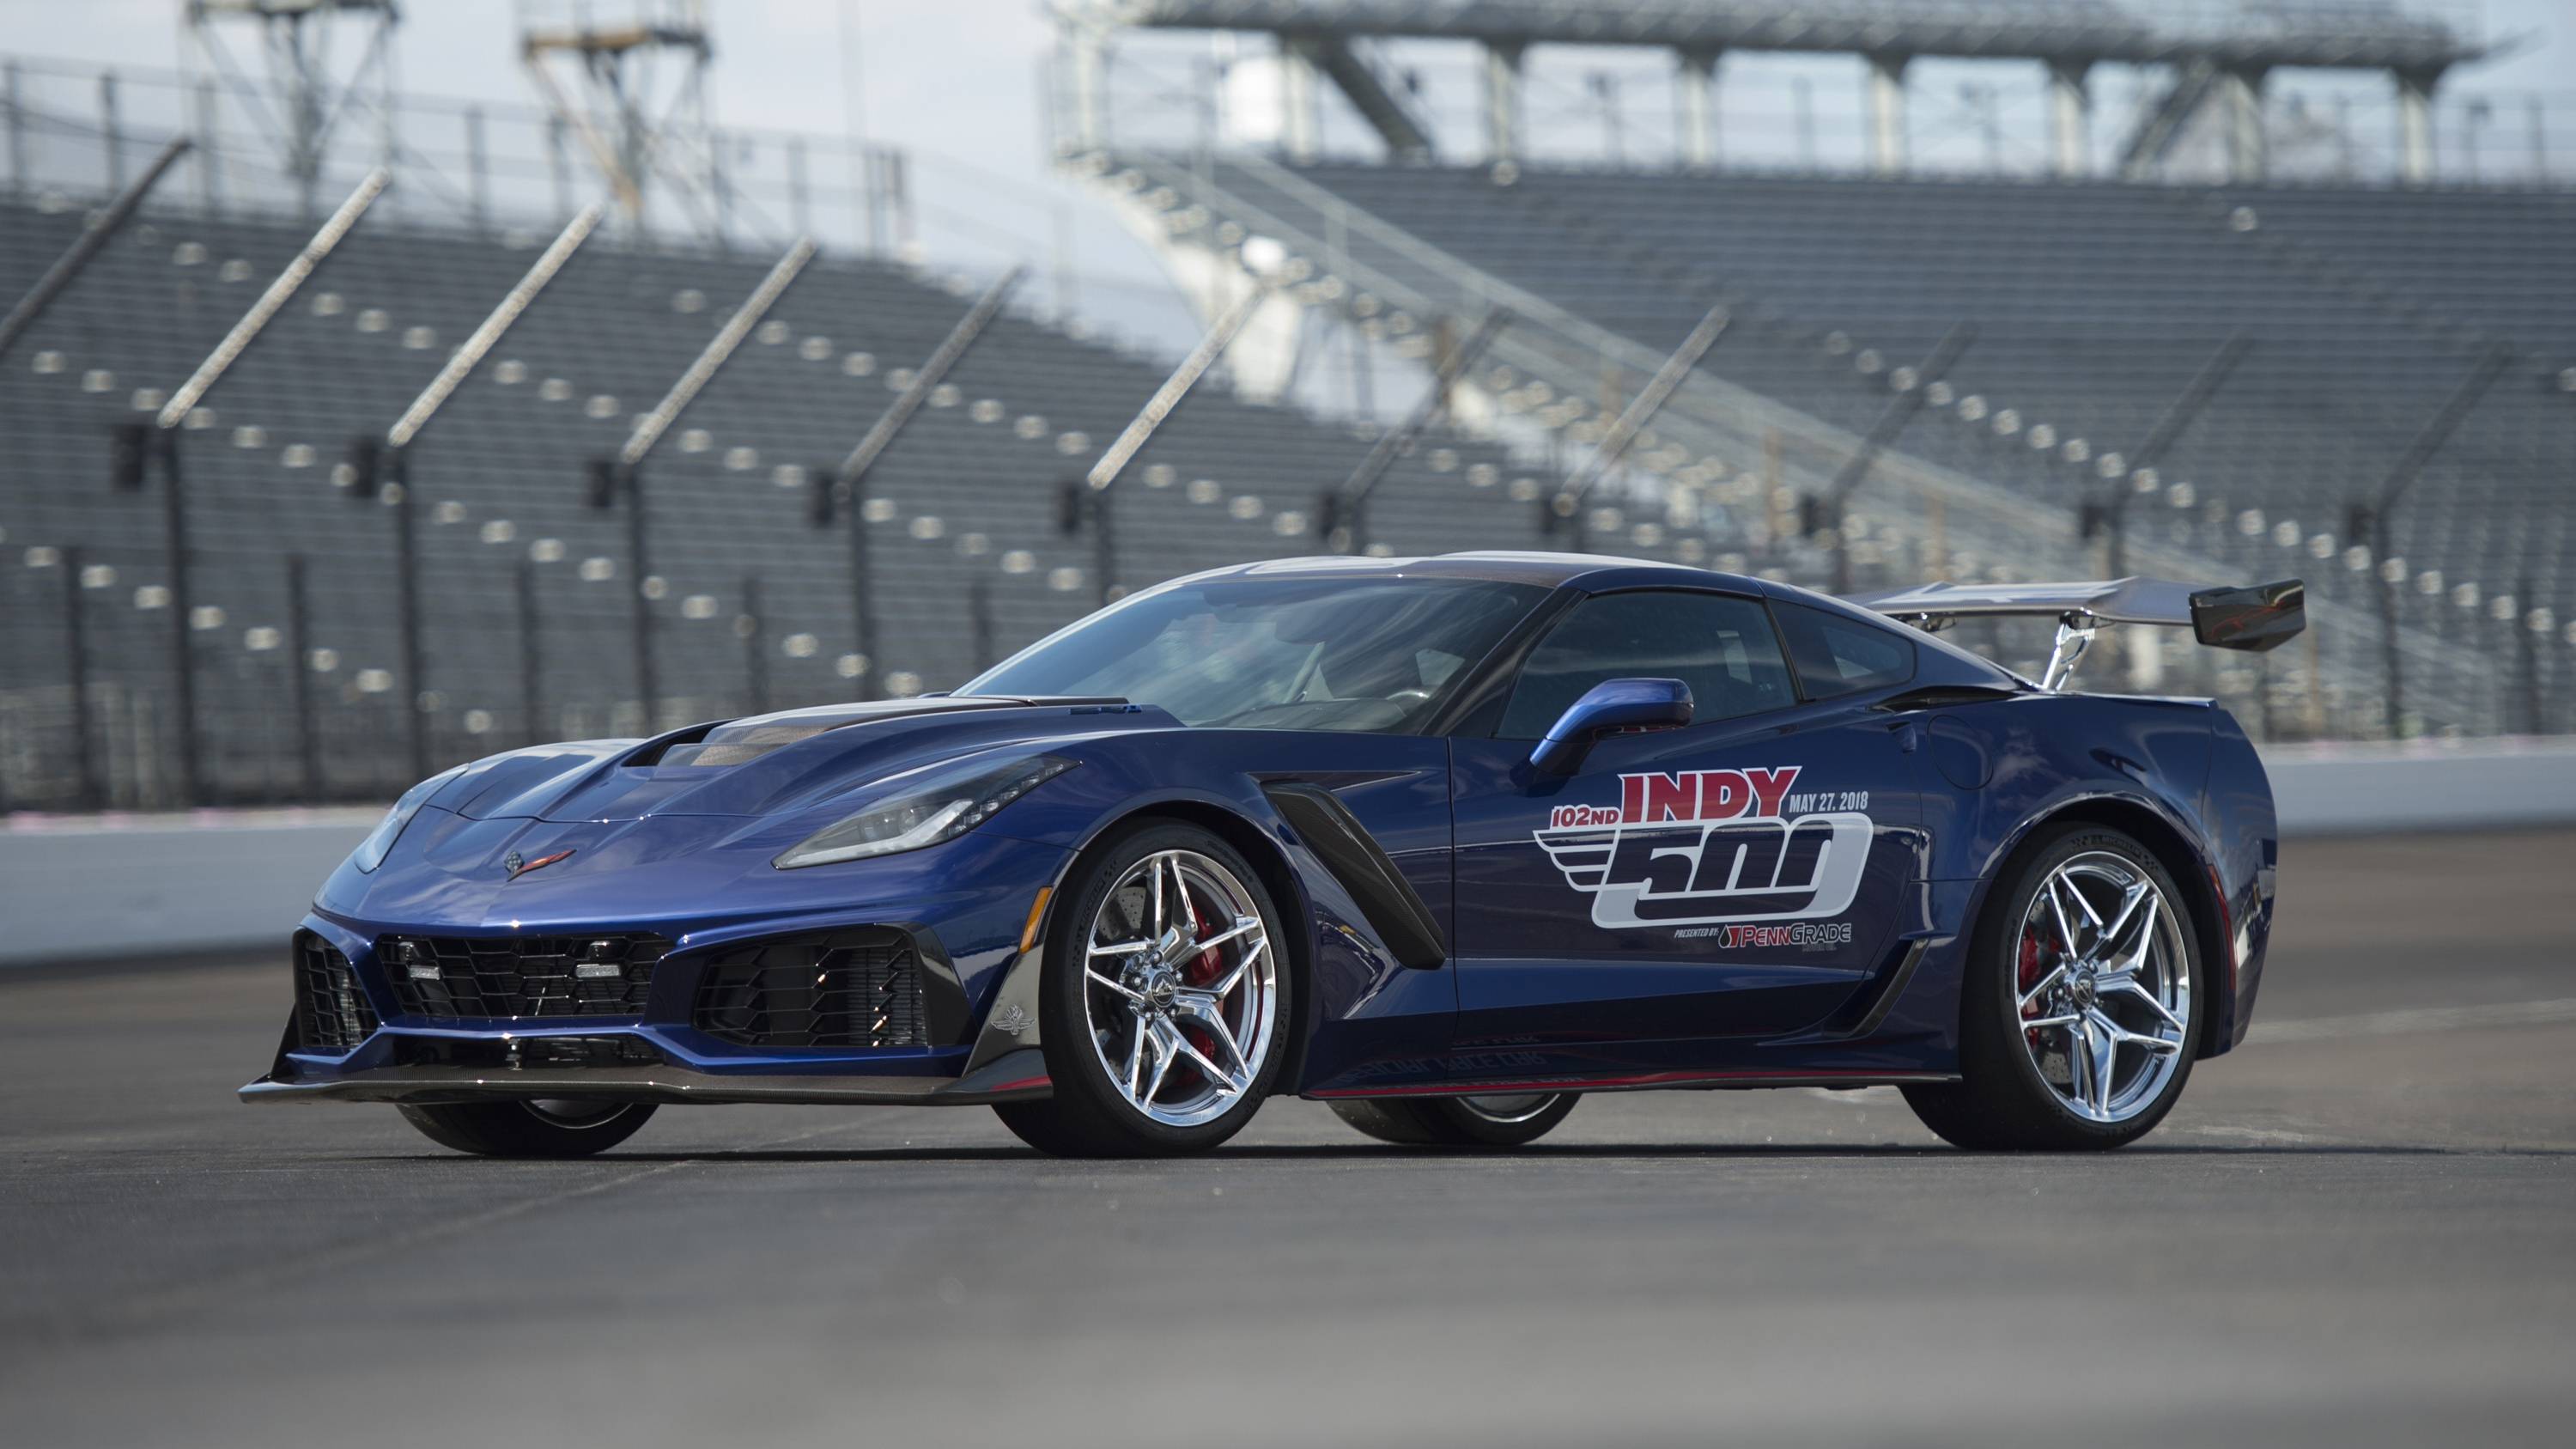 2019 chevrolet corvette zr1 to pace 102nd indianapolis 500 top speed. Black Bedroom Furniture Sets. Home Design Ideas